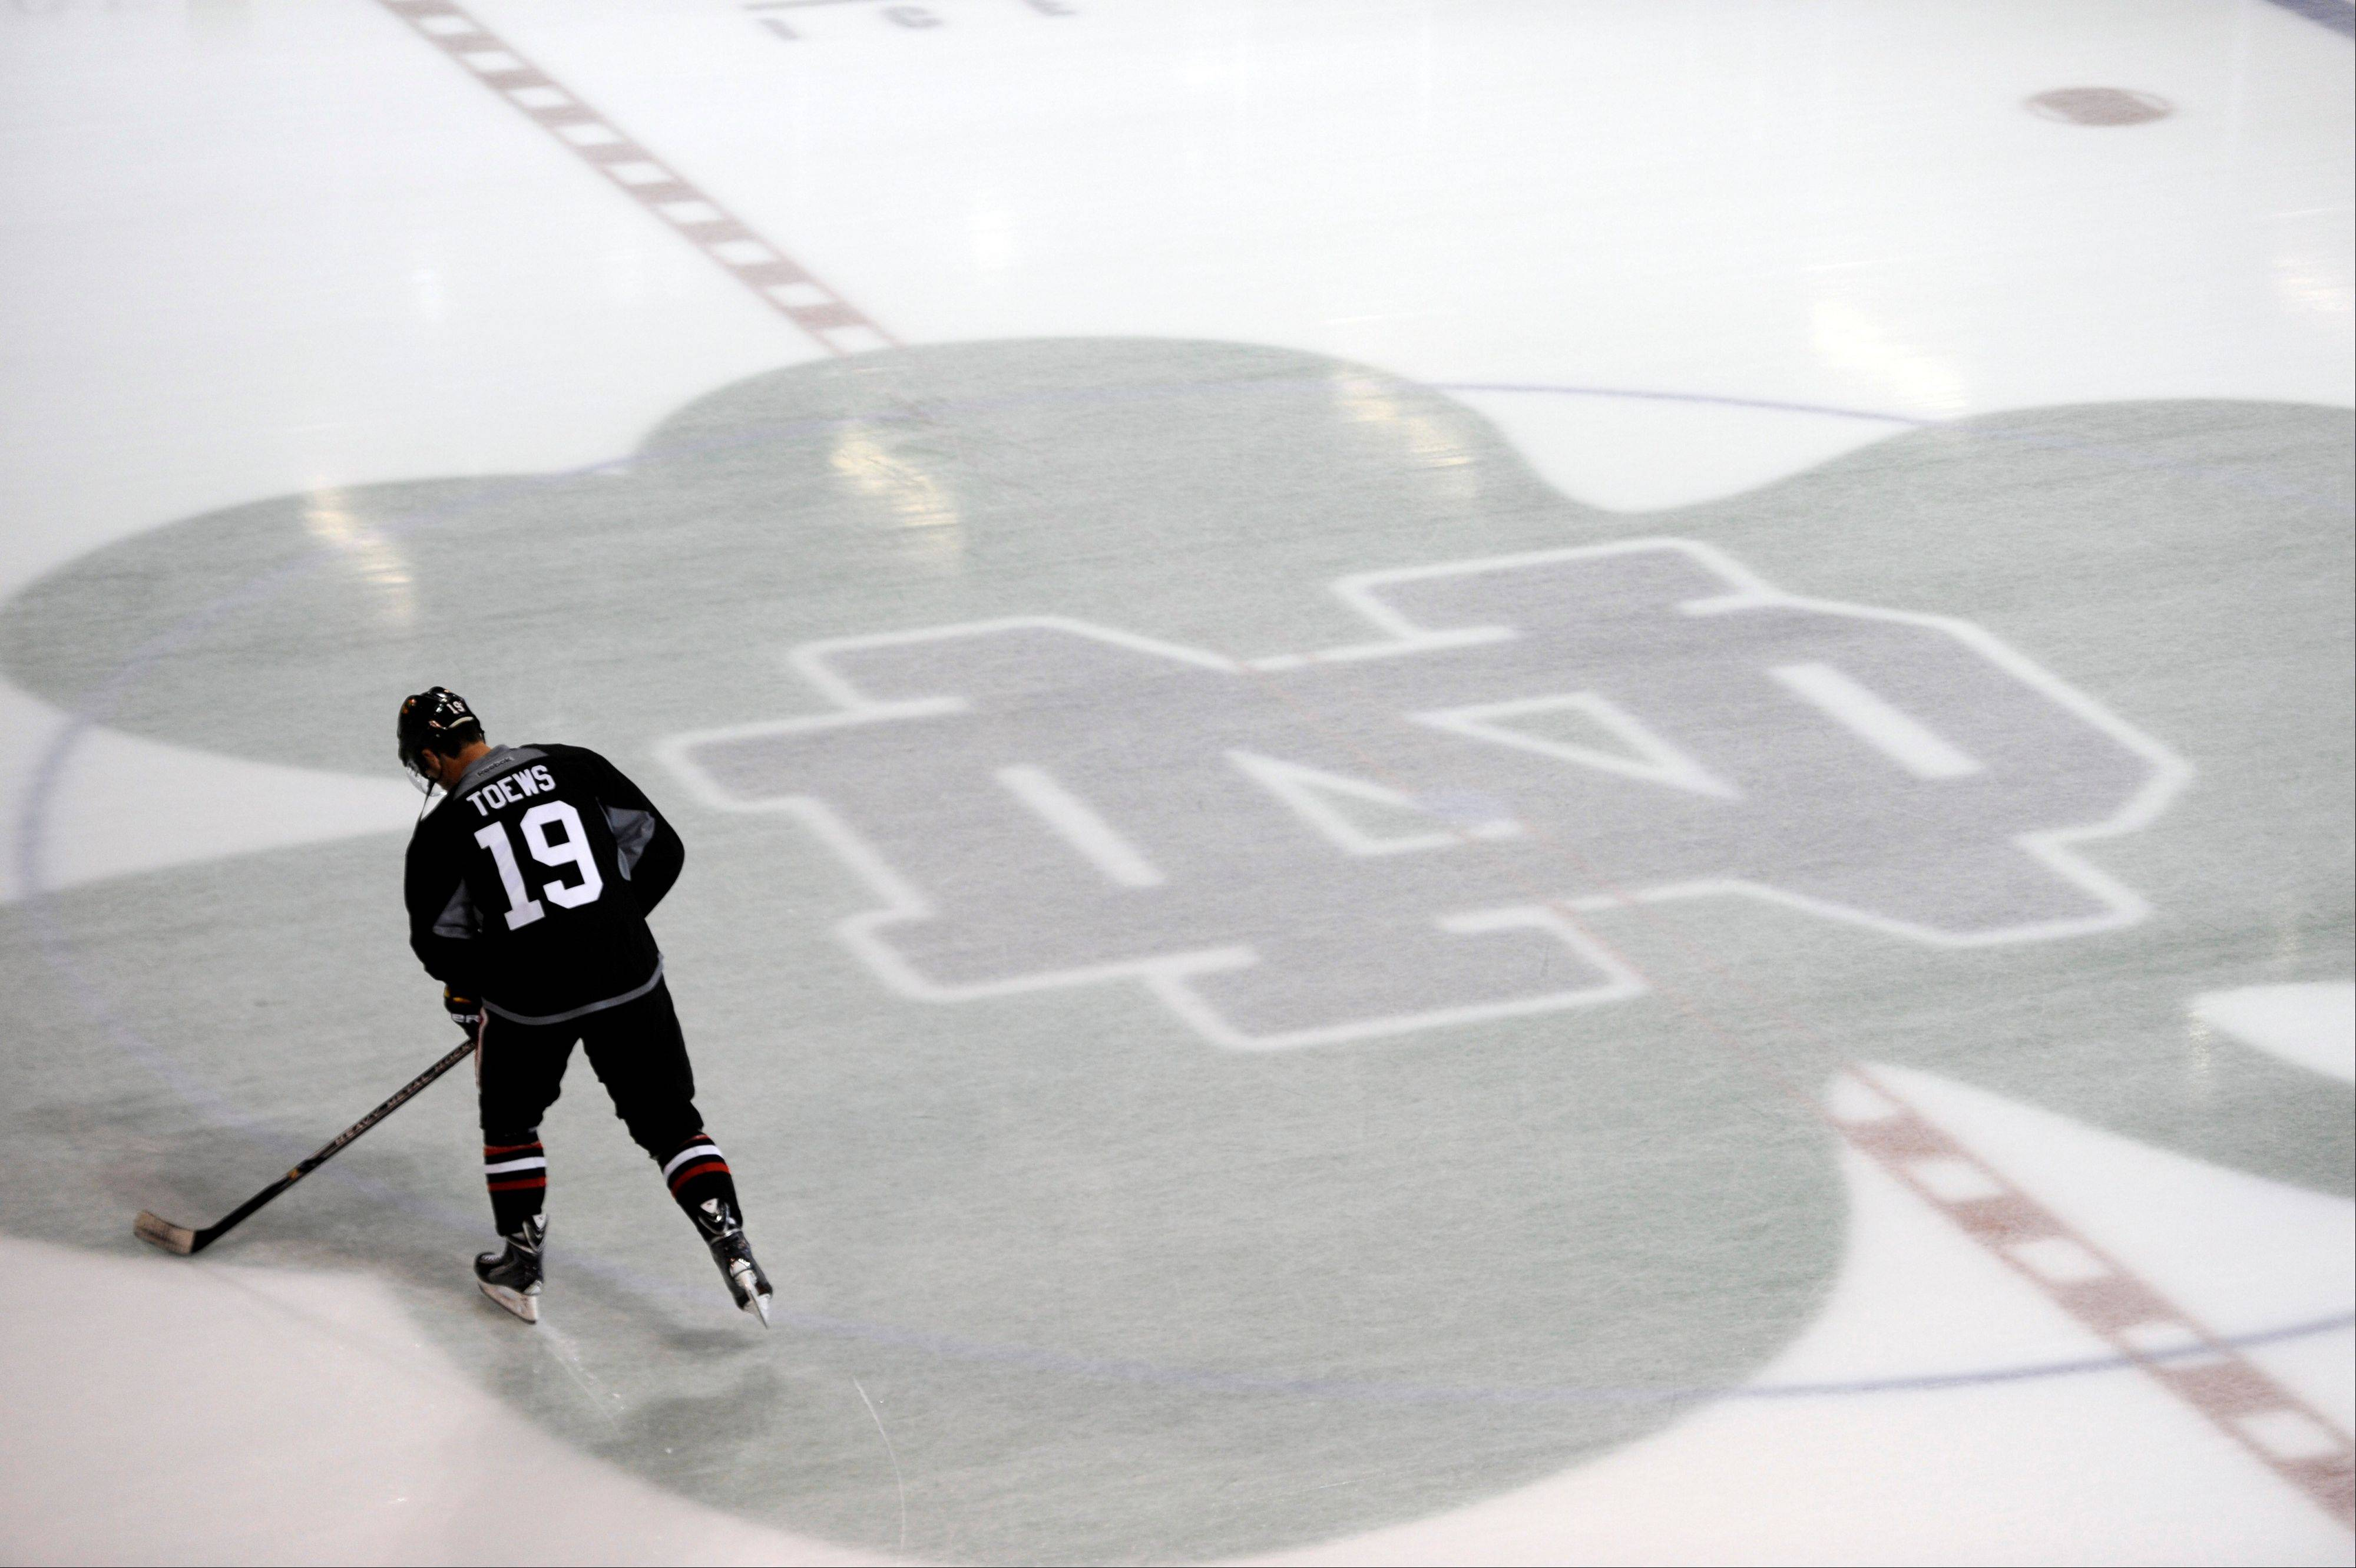 Blackhawks captain Jonathan Toews glides across the Notre Dame logo during training camp Thursday at the Compton Family Ice Arena in South Bend. The $50 million area opened in 2011, and the Hawks will spend five days on campus.